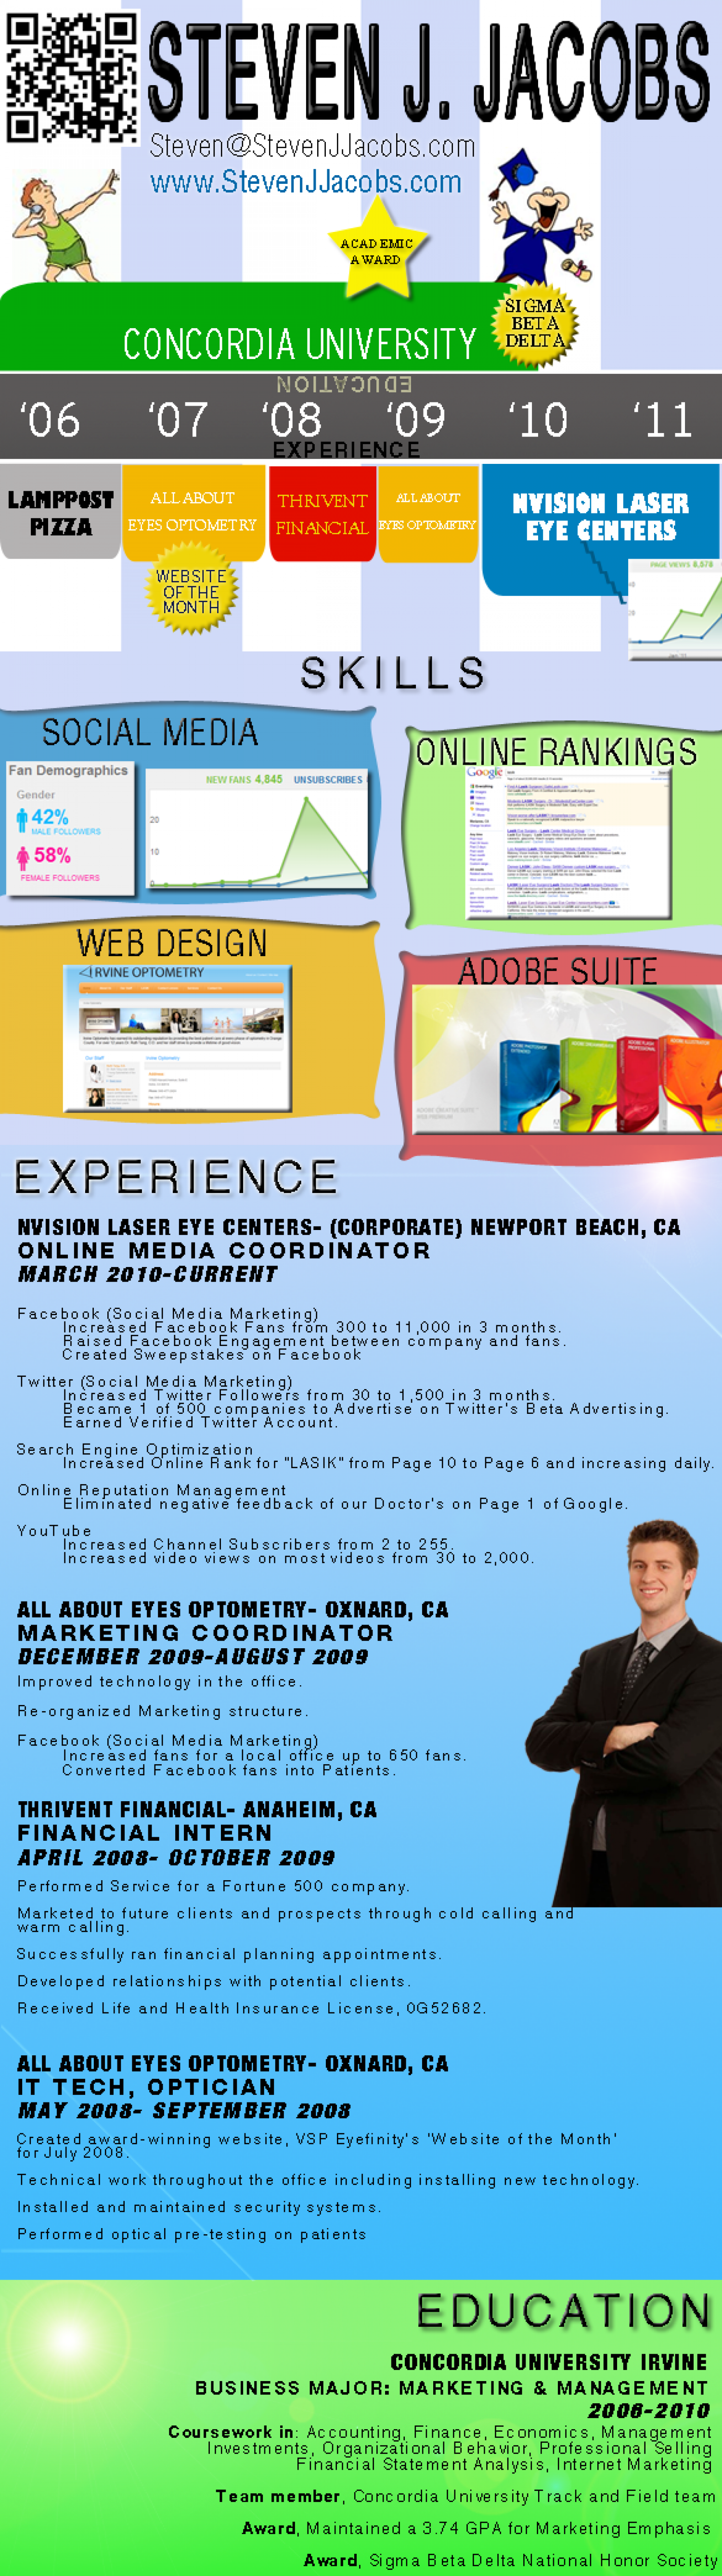 Steven Jacobs Resume Infographic